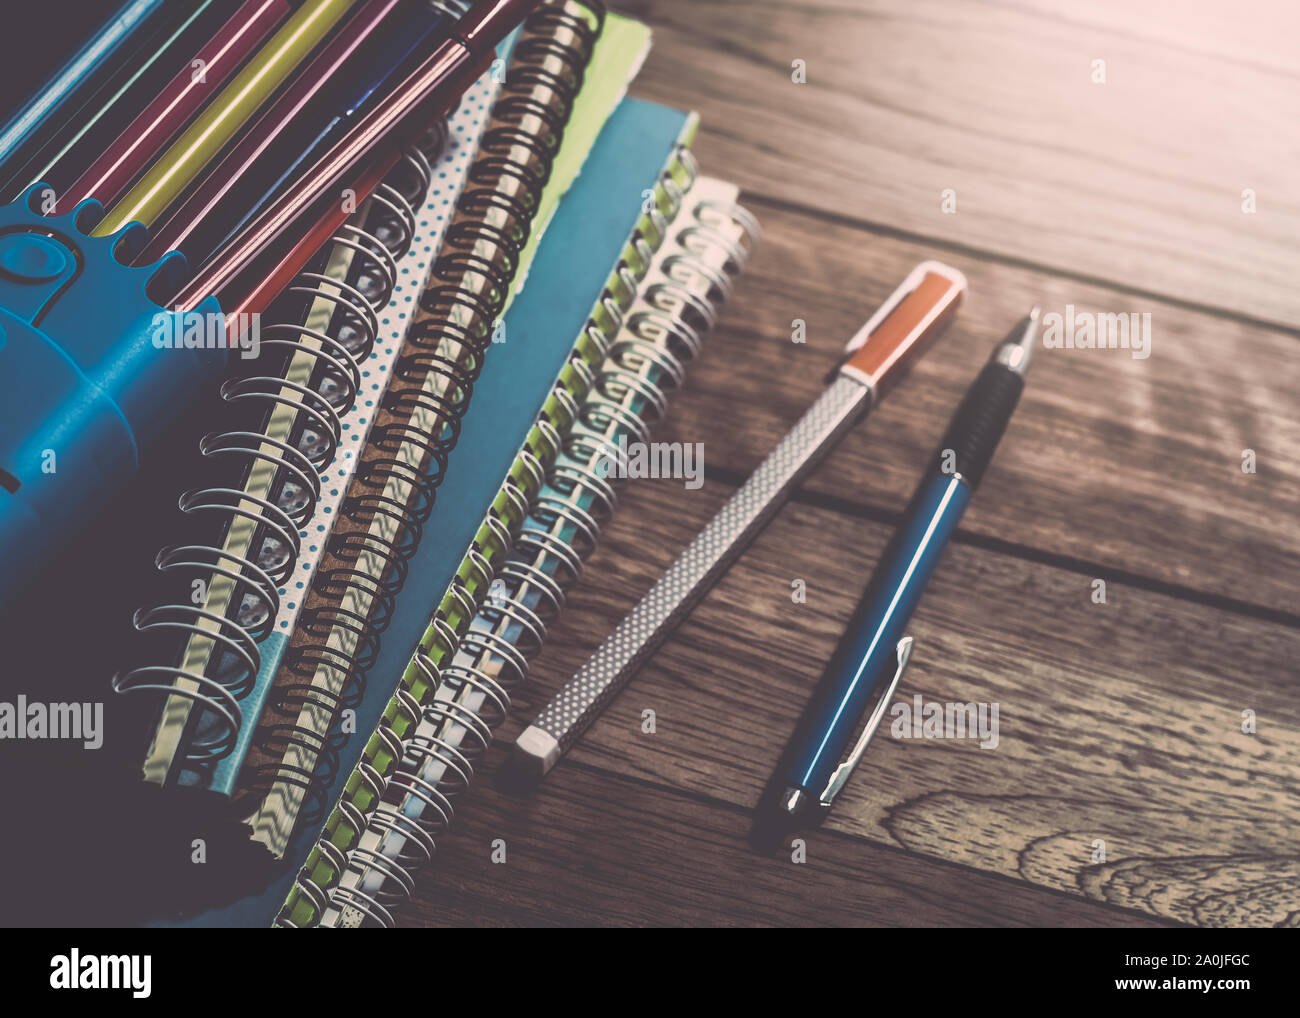 Heap of notebook with pens on wooden table under light in vintage style Stock Photo